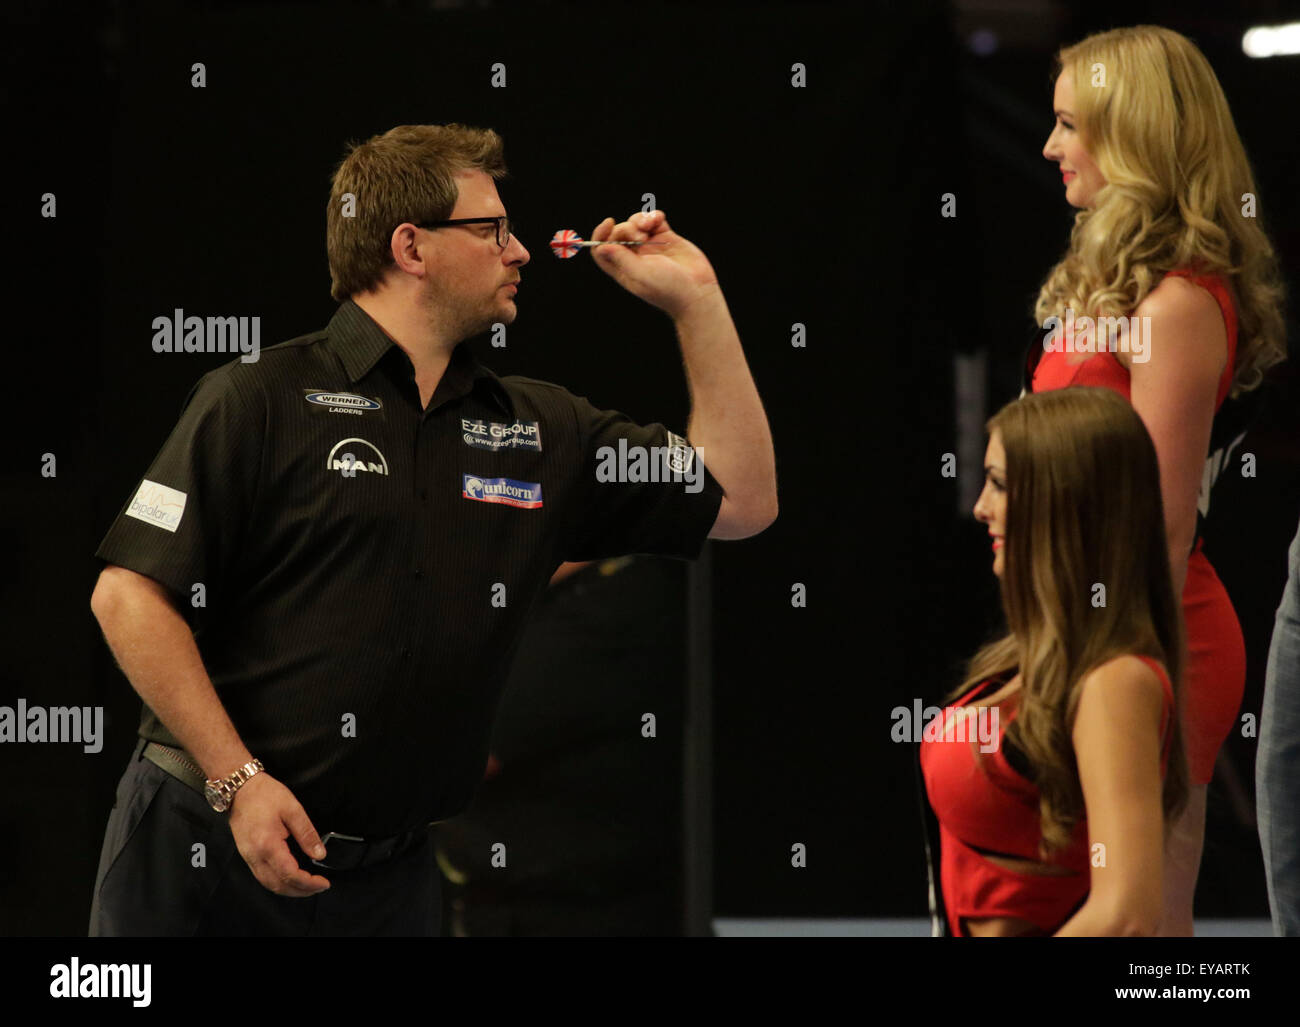 blackpool uk 25th july 2015 betvictor world matchplay darts